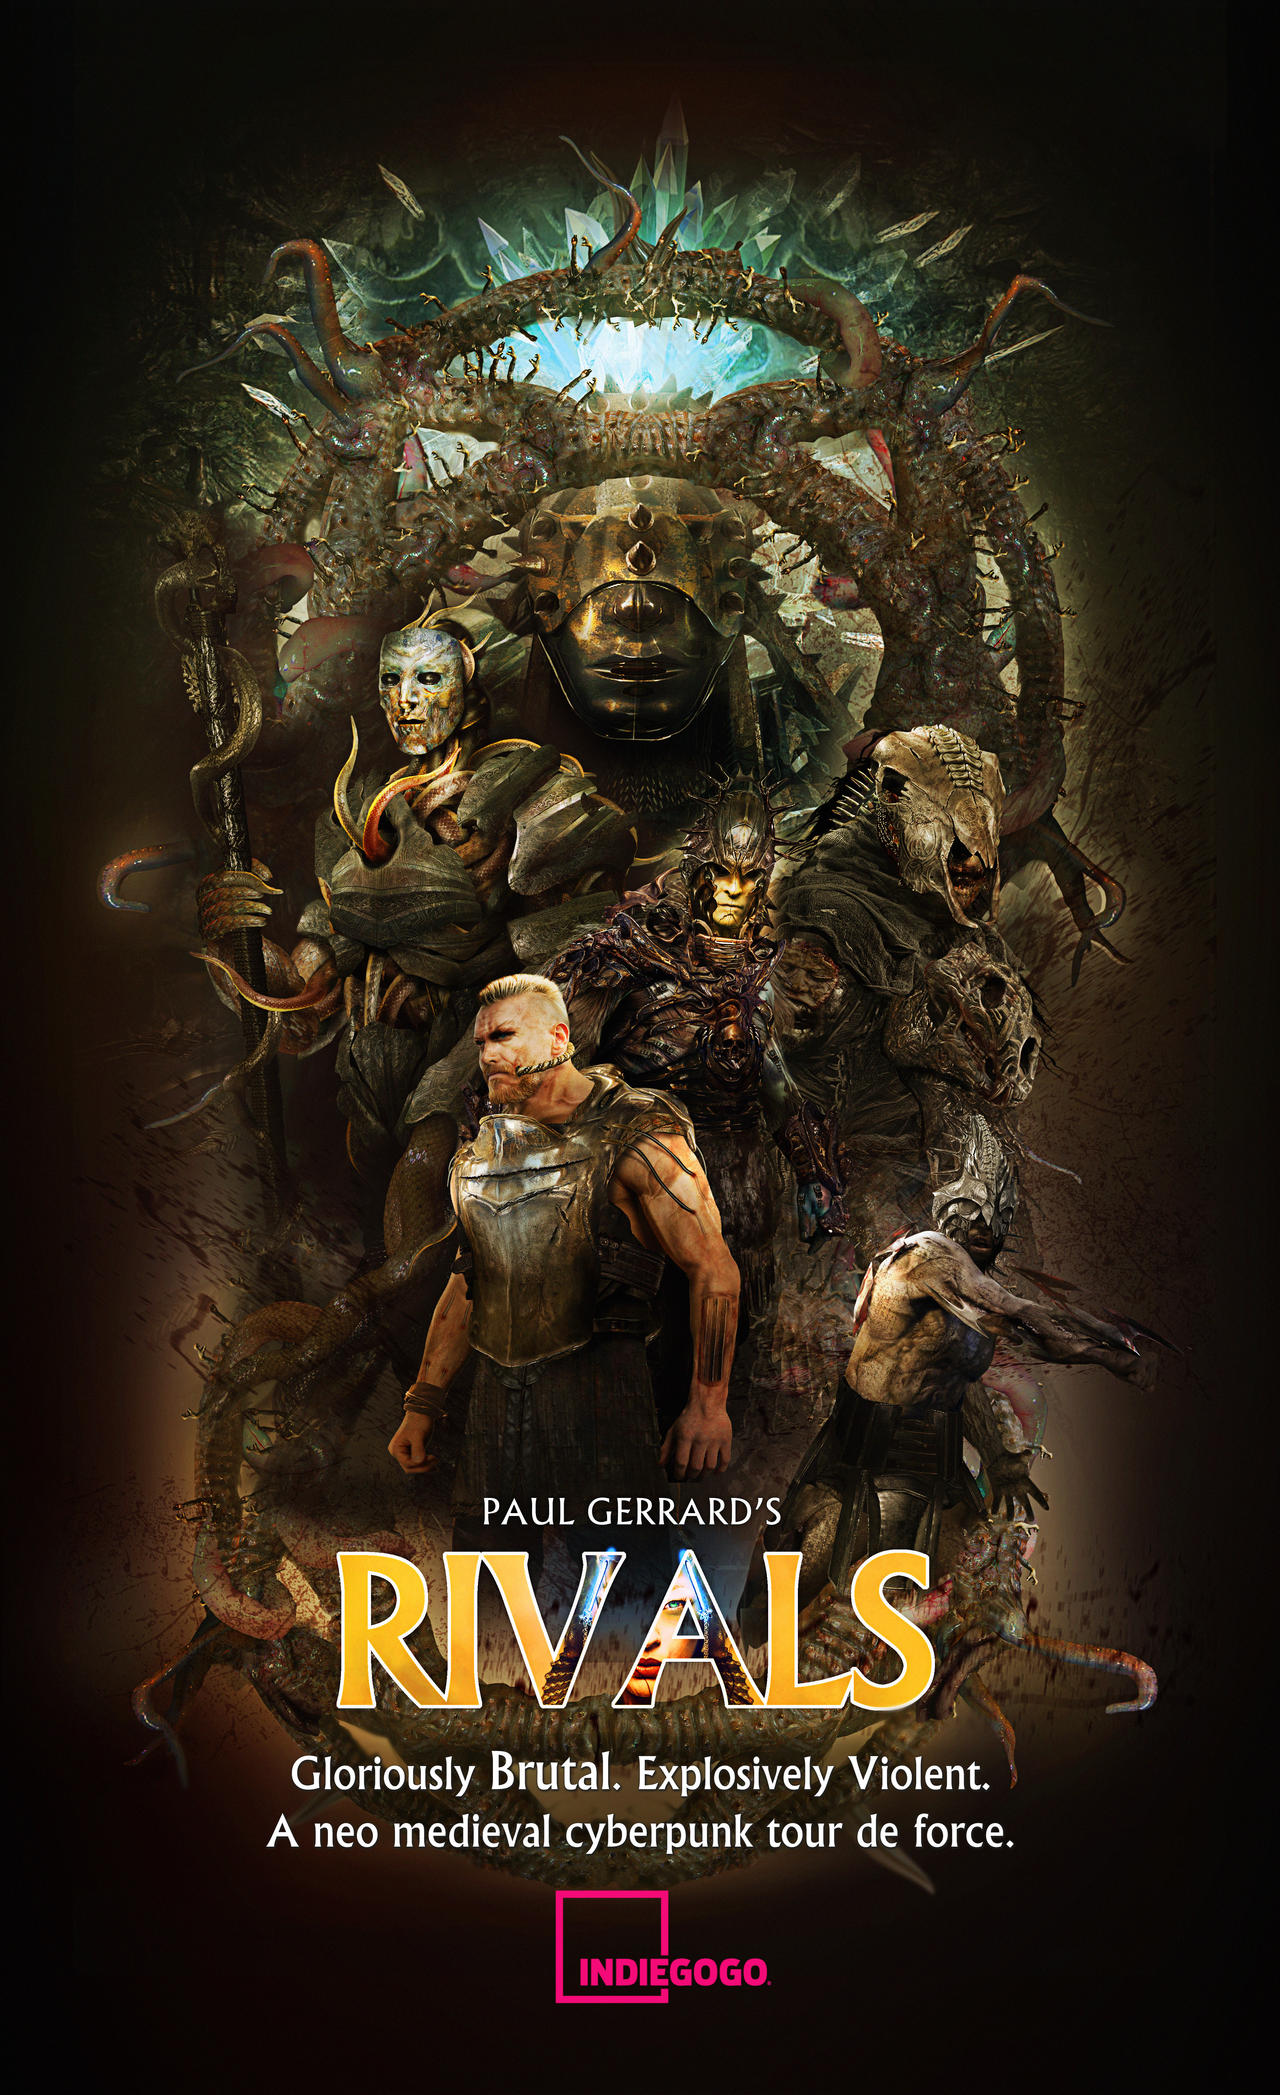 RIVALS POSTER : TV ON CROWD FUNDER NOW